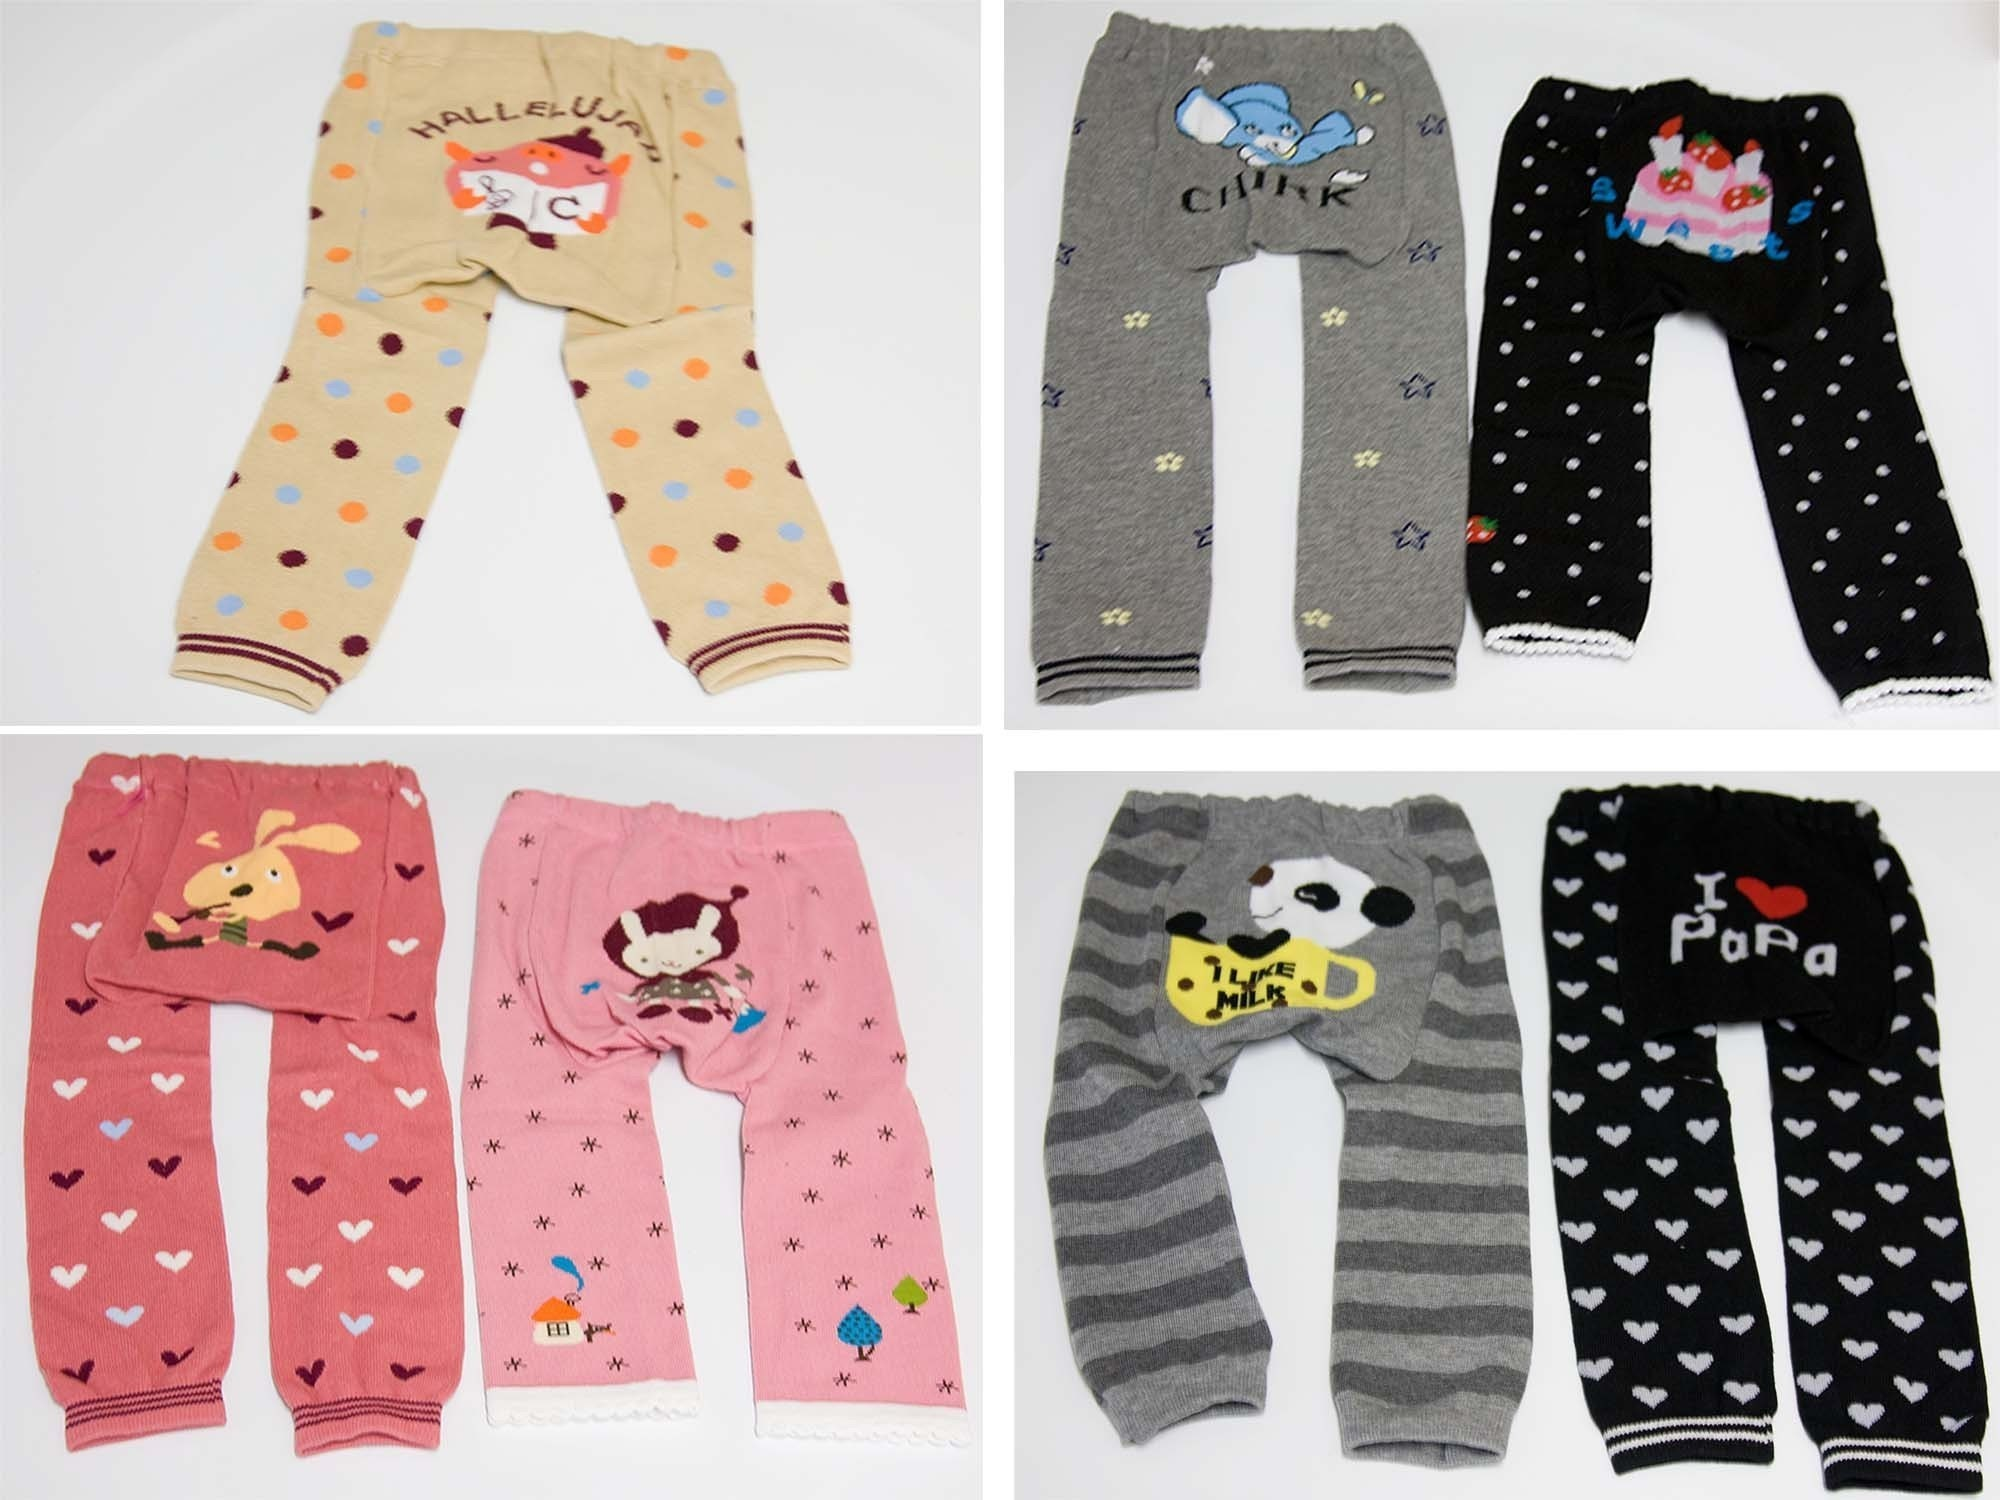 Baby Leggings Footless Tights SO MANY CUTE PRINTS AVAILABLE